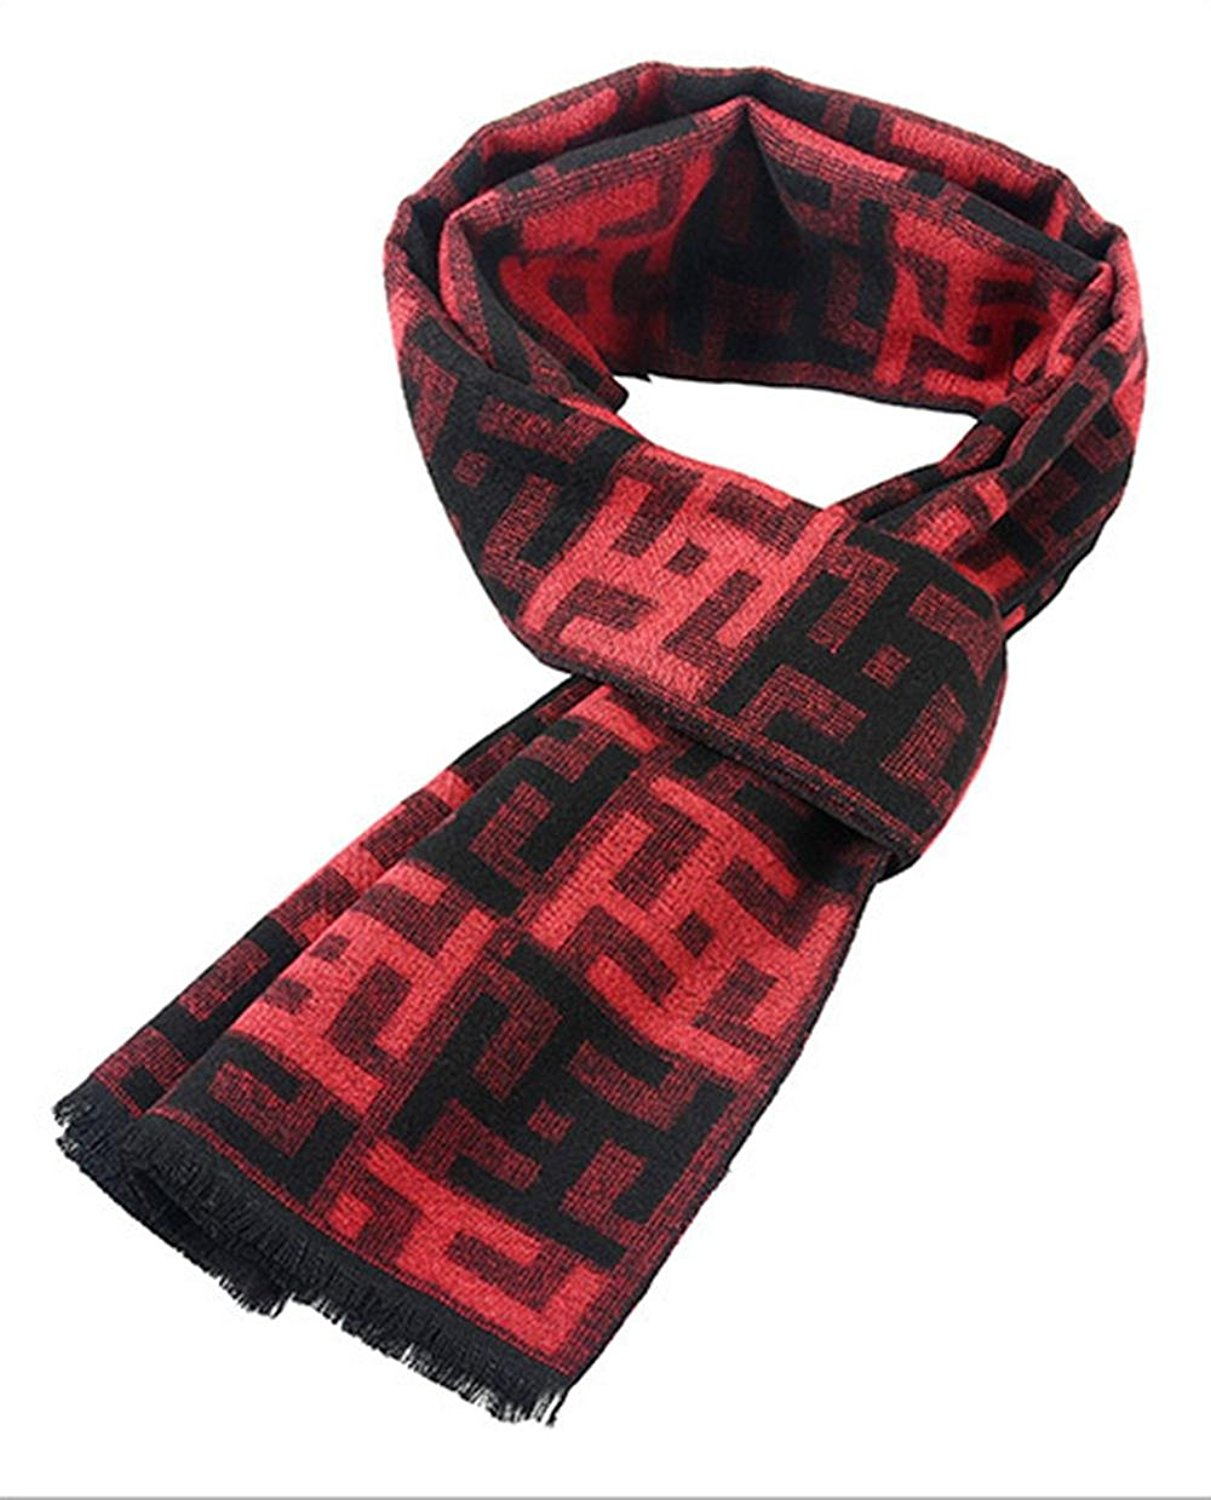 New autumn and winter men 's scarf imitation silk brushed warm scarf winter scarf million words geometric scarf , 180cm